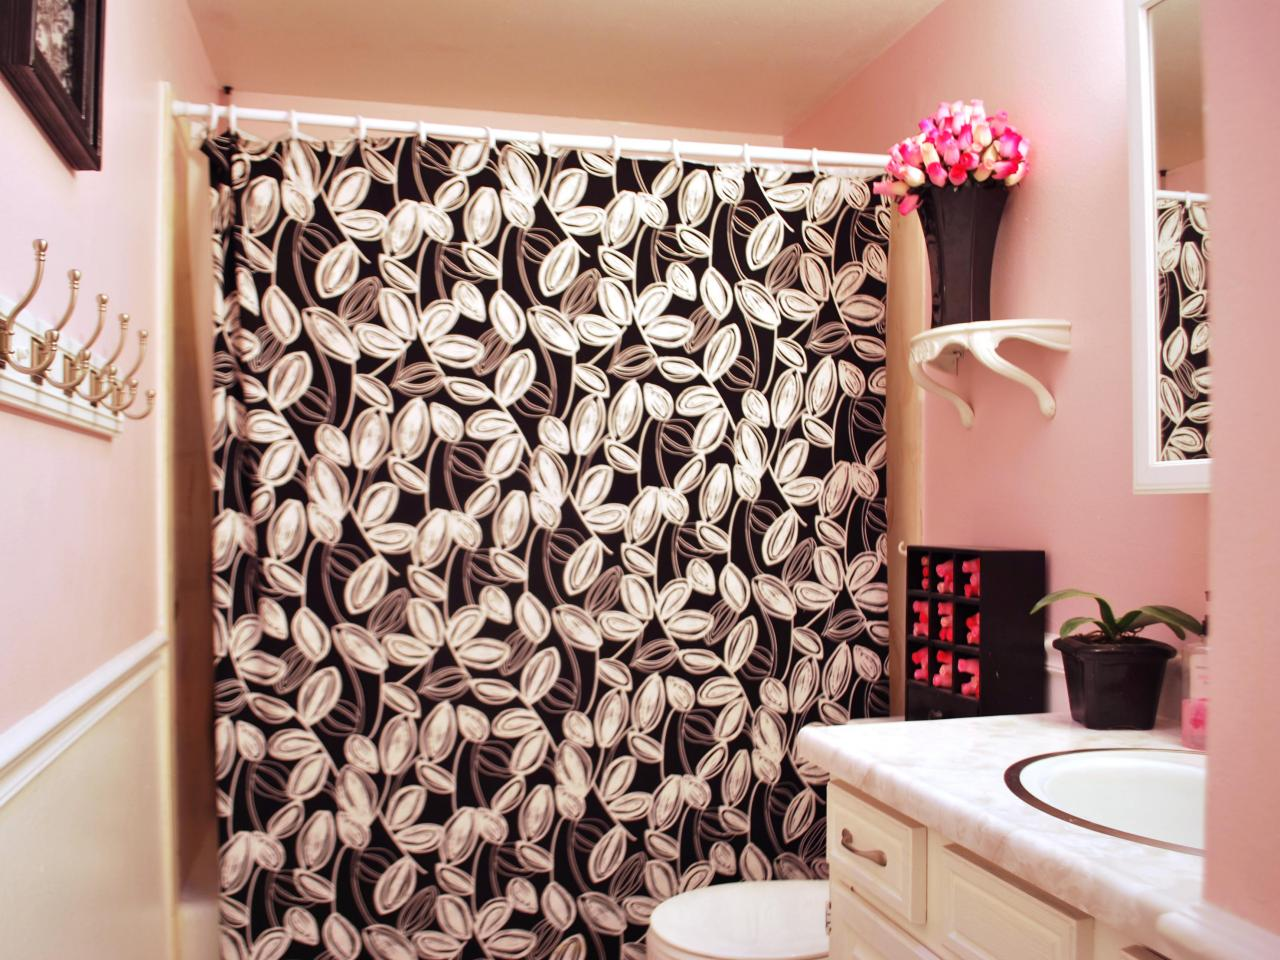 Flowers Shower Curtain | Floral Shower Curtains Fabric | Floral Shower Curtain